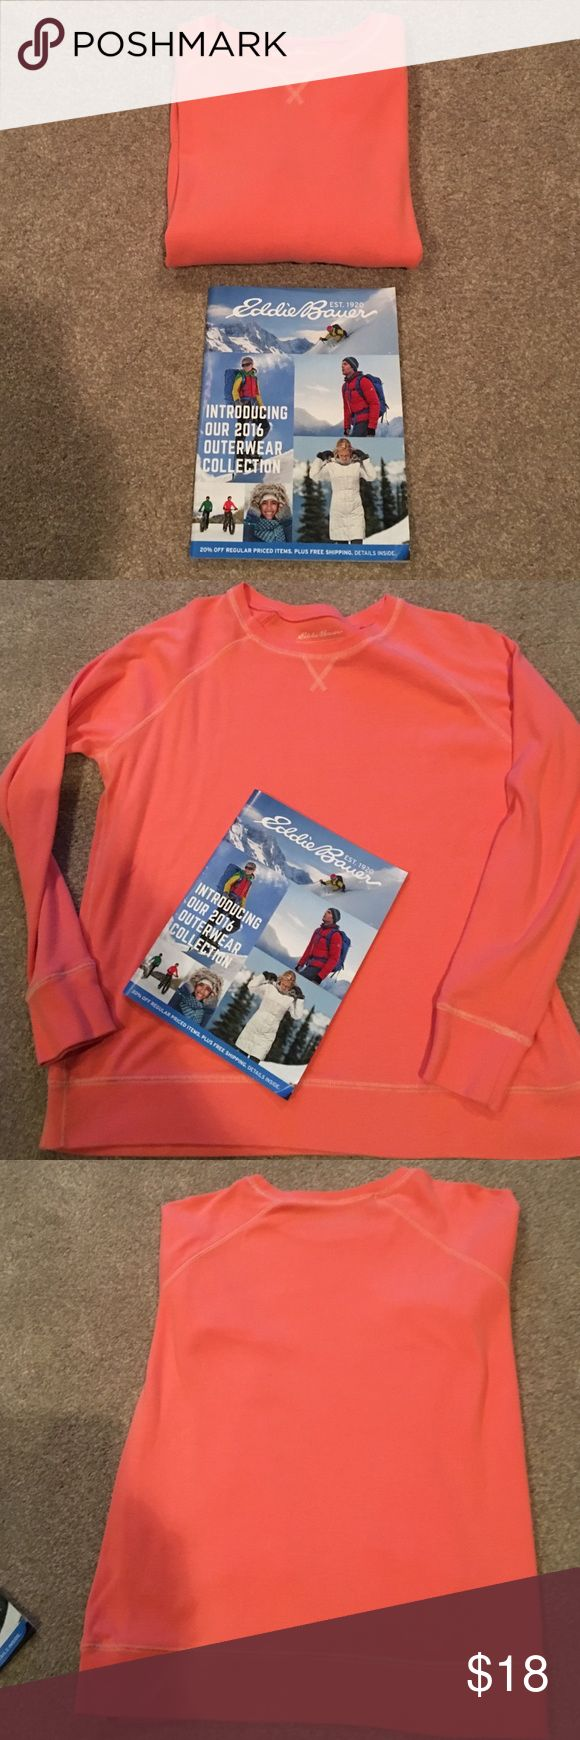 """🍁Eddie Bauer Legend wash crew rock Sweatshirt 🍁 Measures: 23"""" across bust.26"""" length shoulder-bottom hem. Sleeve length inside: 19.5"""" size XL. SFH. Gently used condition. No stains or rips anywhere. Color light coral. Eddie Bauer Tops Sweatshirts & Hoodies"""